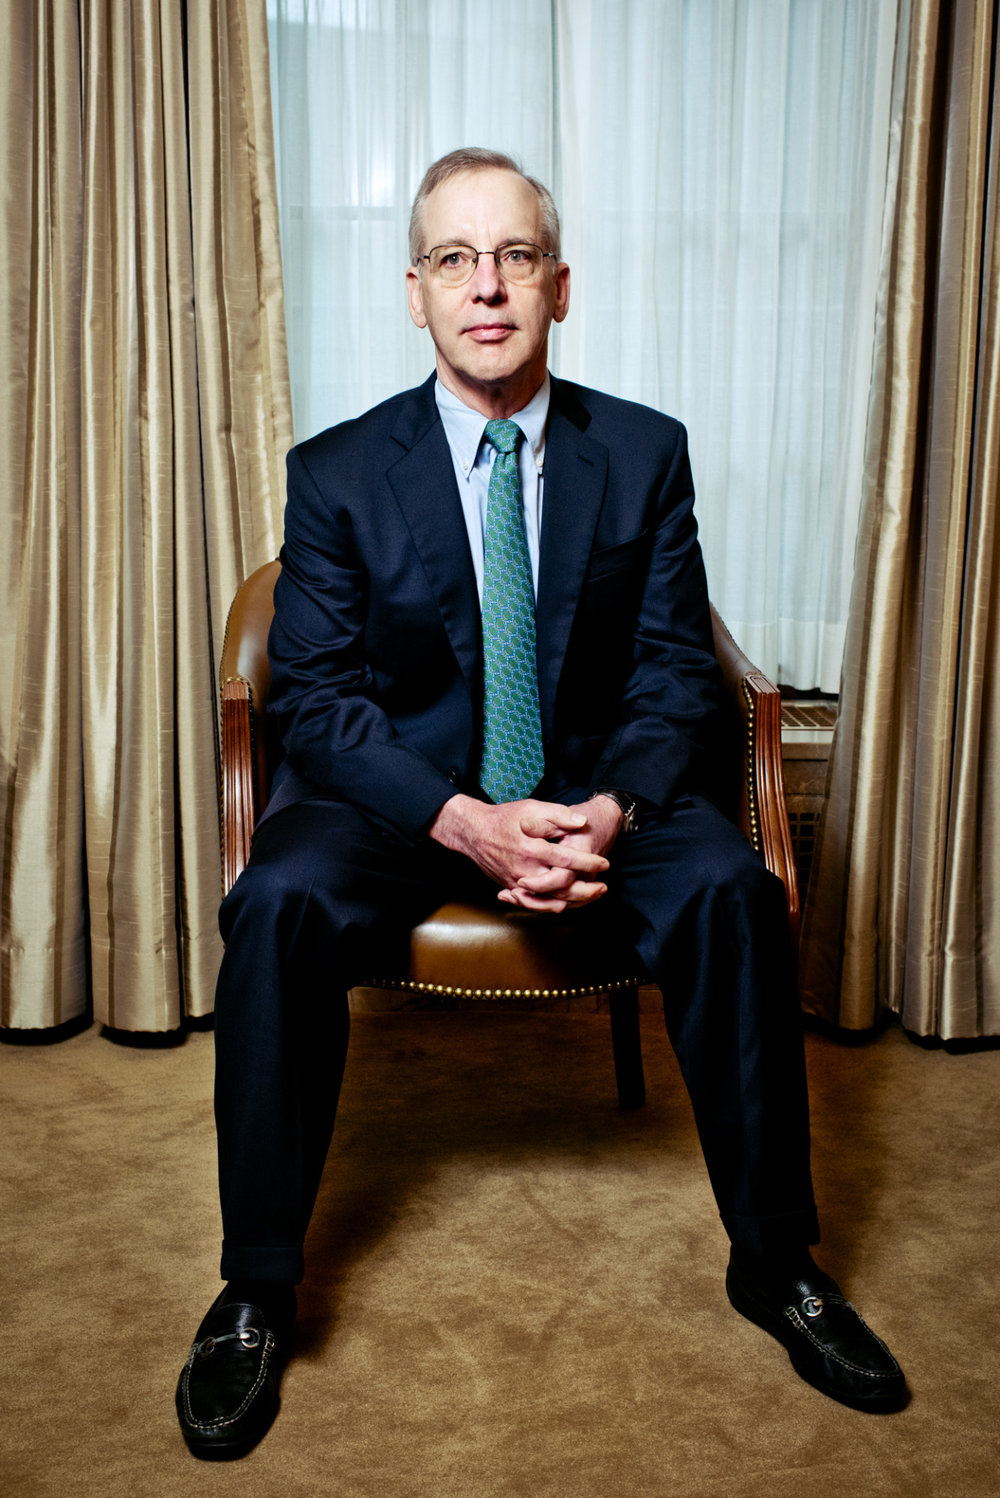 NY Federal Reserve William Dudley, shot for The New York Times.